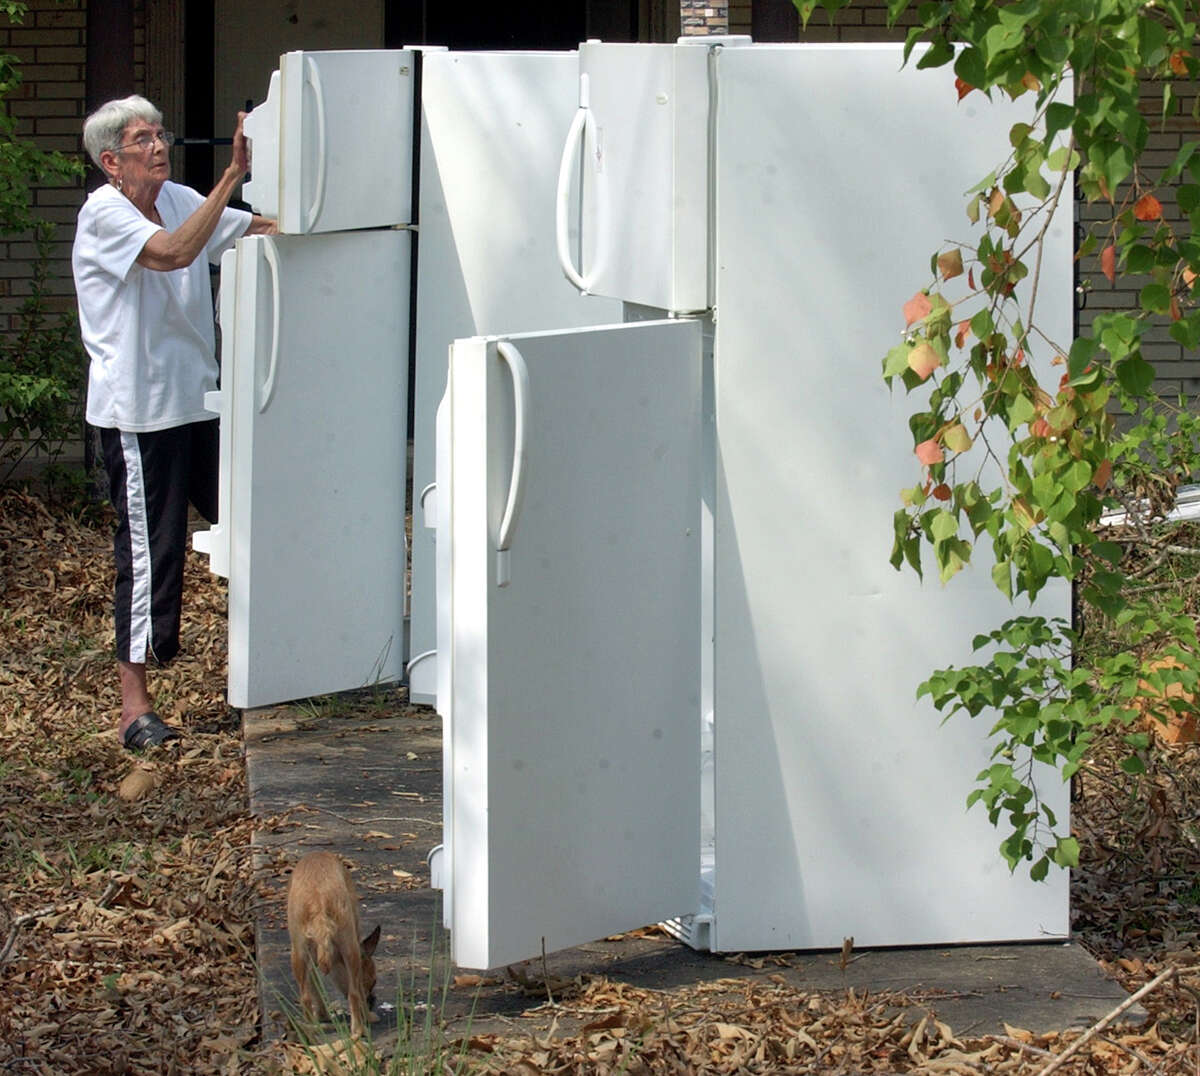 Willa D. Coe, 77, cleaned out her refridgerators in front of her Kountze a few days after Hurricane Rita tore through Southeast Texas. FEMA records show Texans requested or were paid for more than 6,400 refrigerators through the agency's individual assistance program through December 2005.